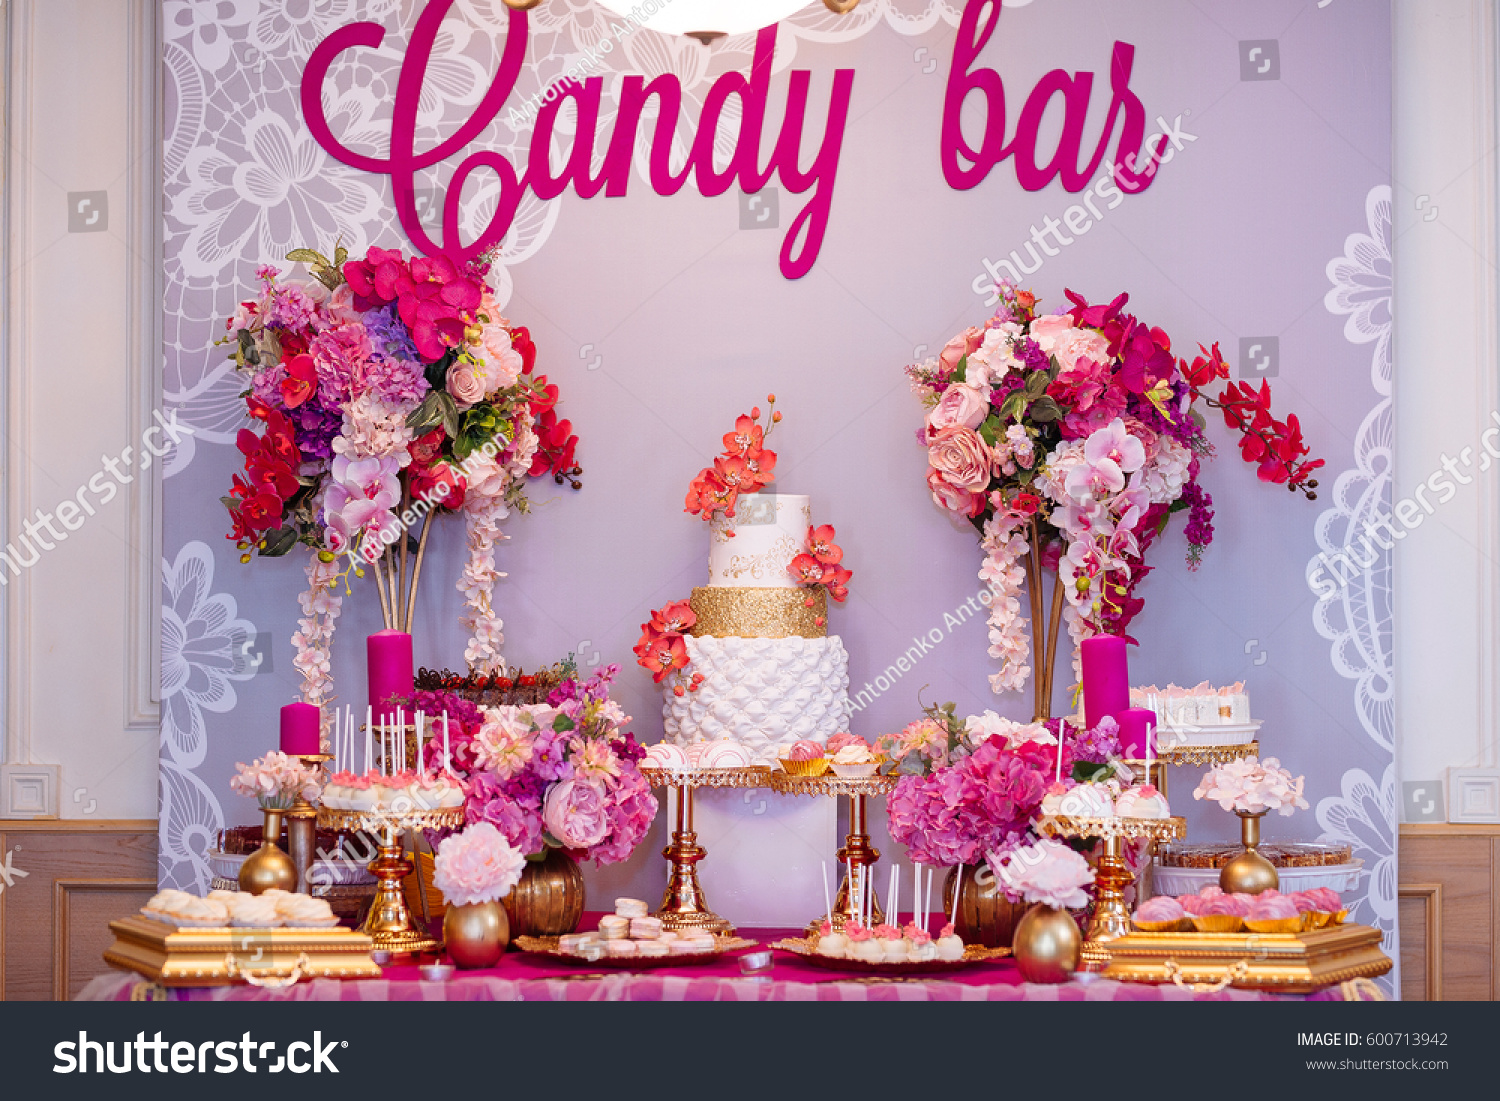 Candy Bar Pink Shades Wedding Pink Stock Photo (Edit Now) 600713942 ...